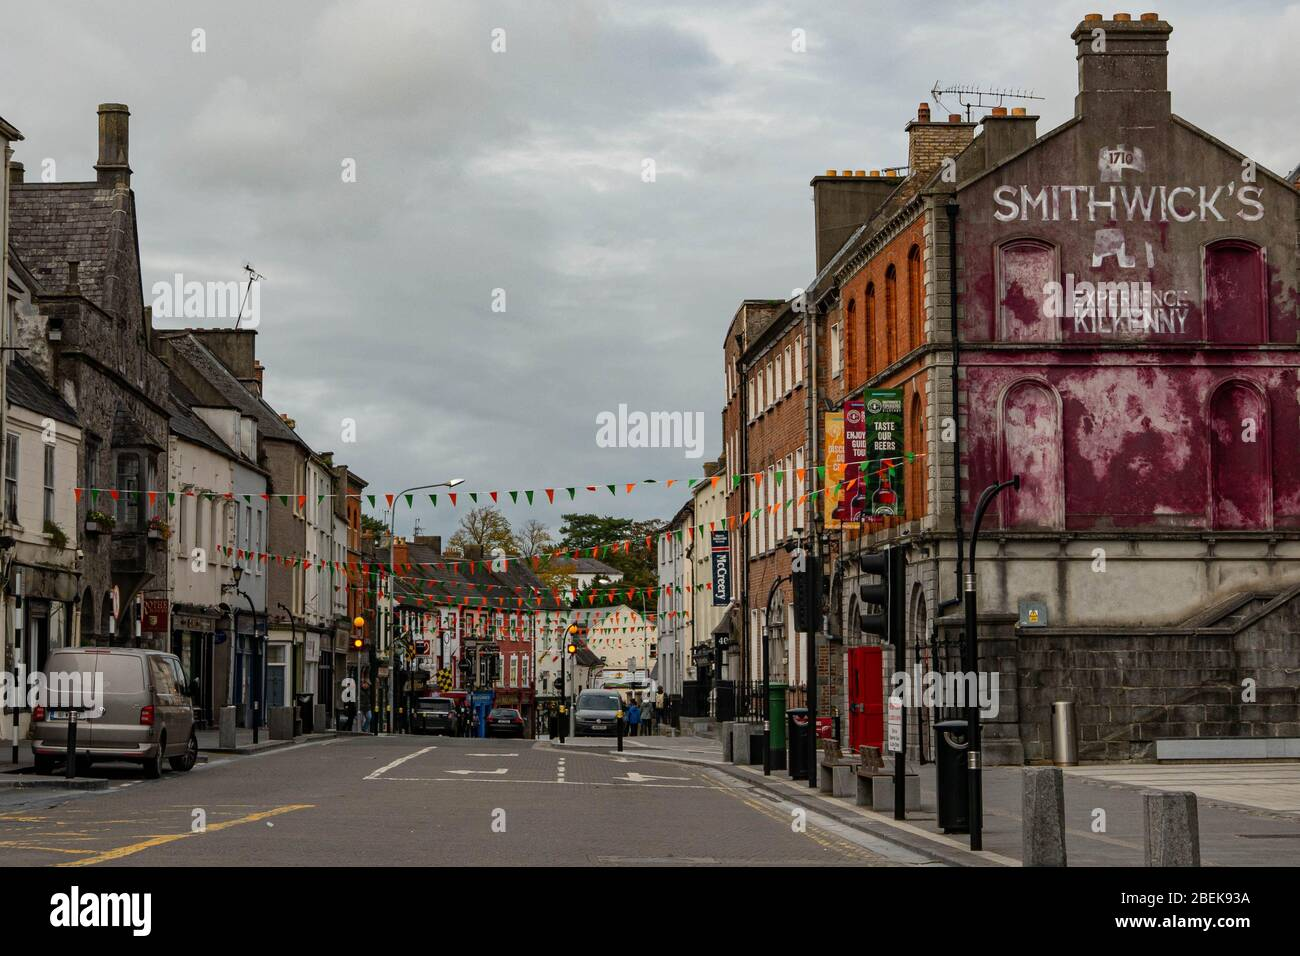 Parliament Street and Smithwicks Brewery in downtown Kilkenny, Republic of Ireland. Stock Photo